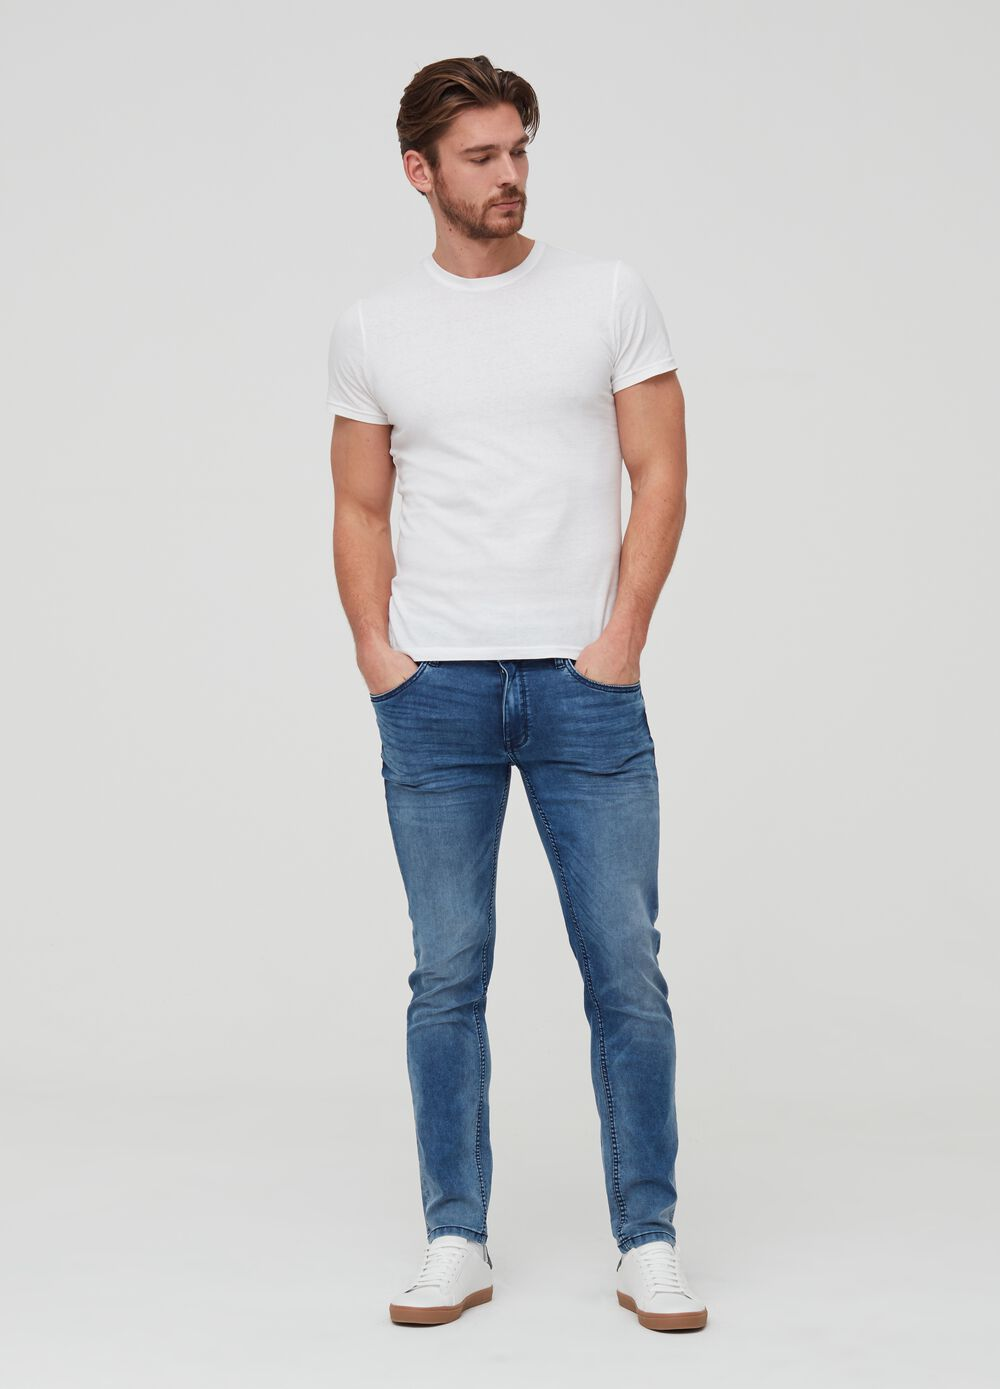 Jogger trousers in denim